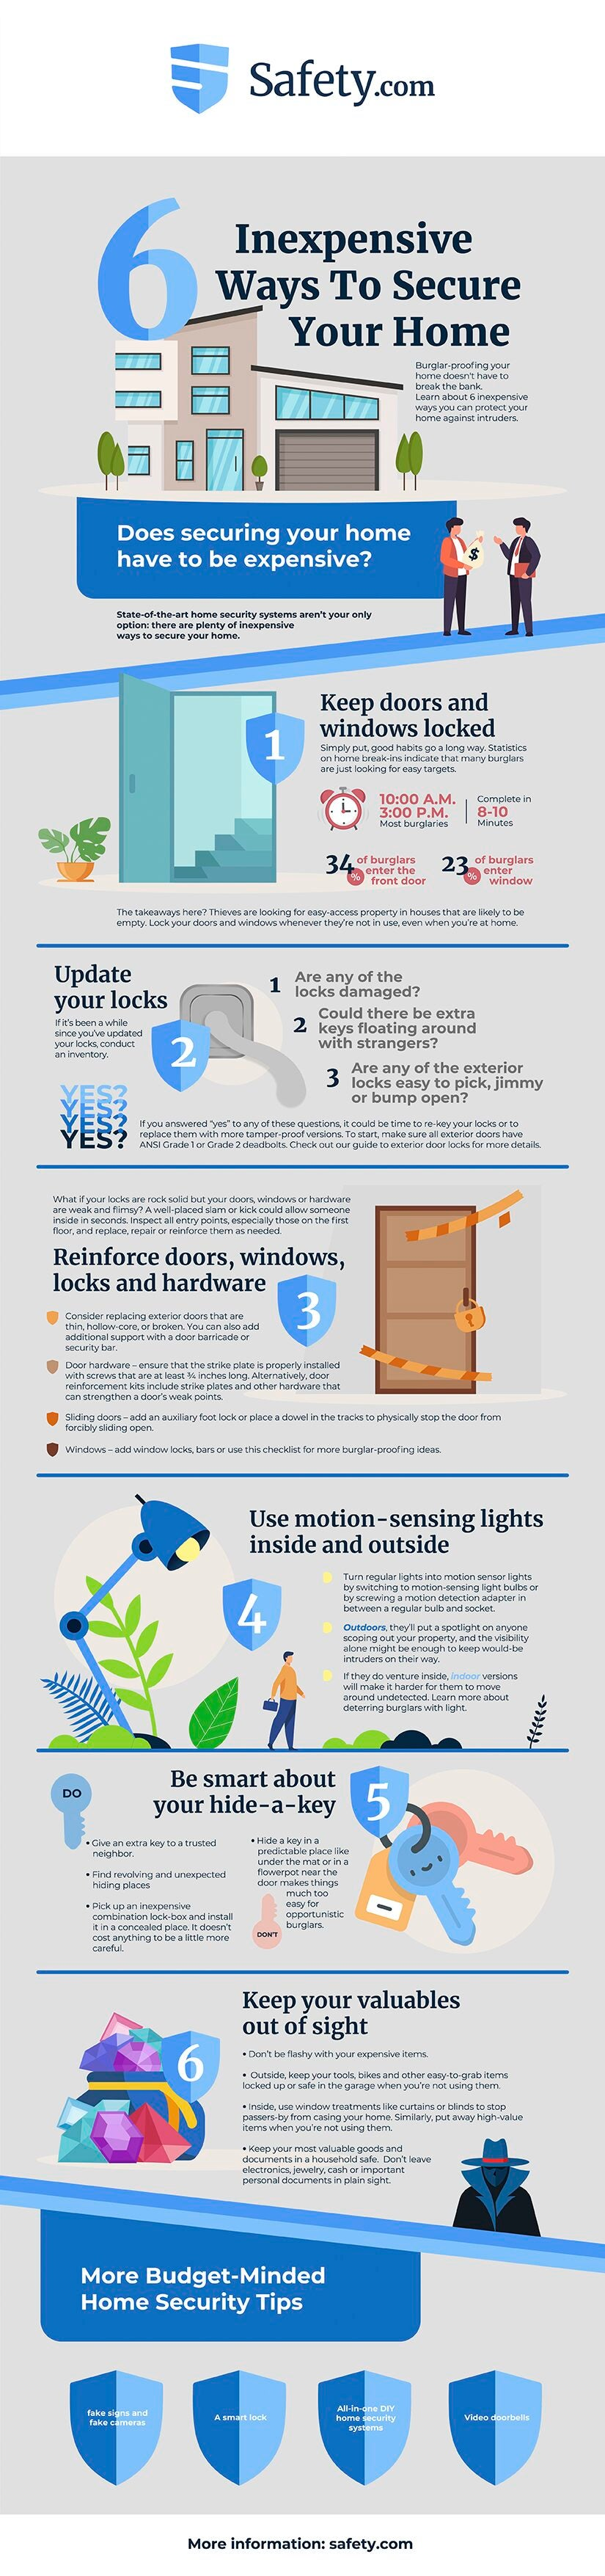 inexpensive ways to secure your home infographic